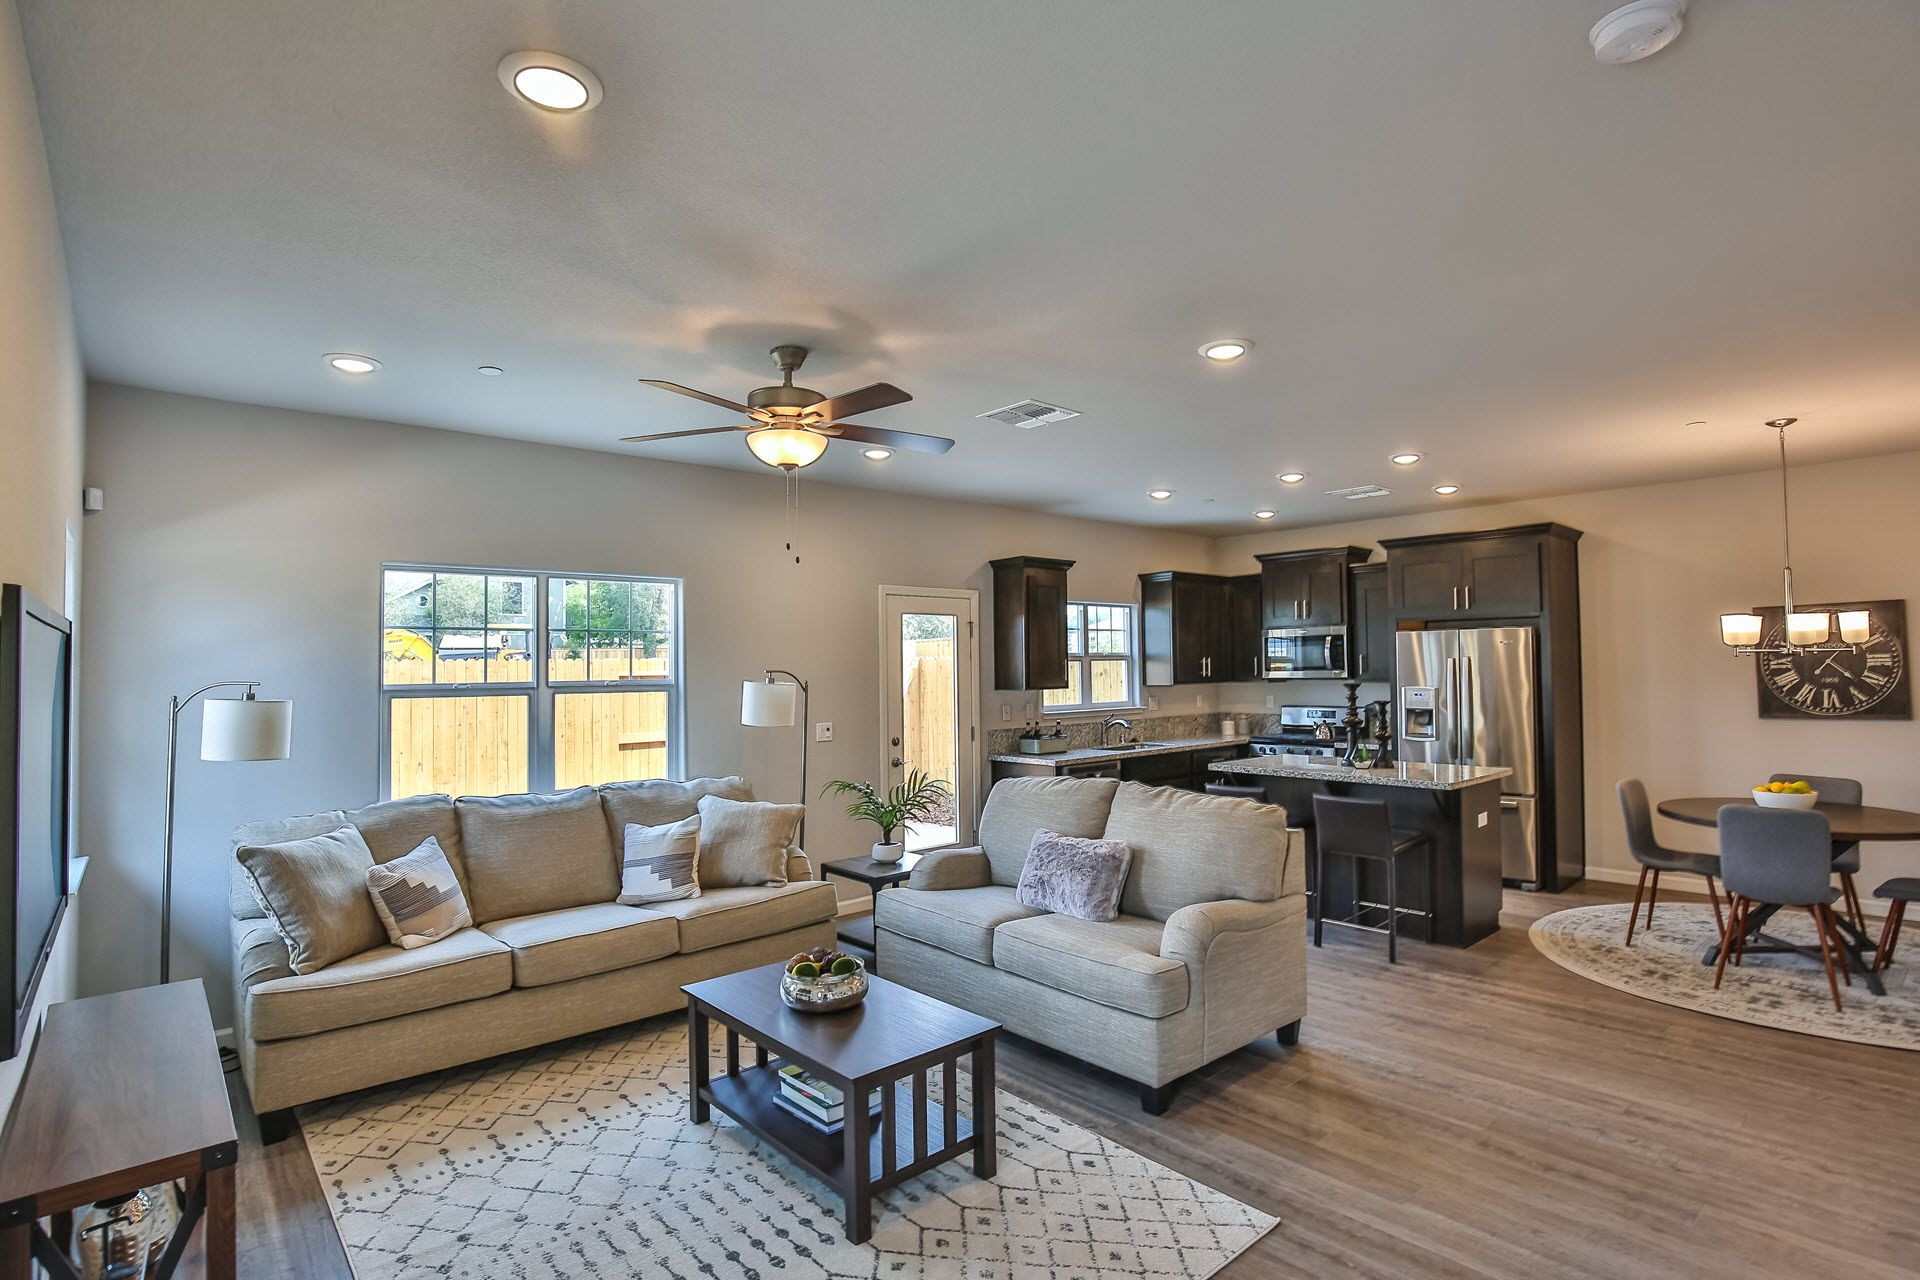 Living Area featured in the Residence 1669 By Village by the Ponds  in Sacramento, CA